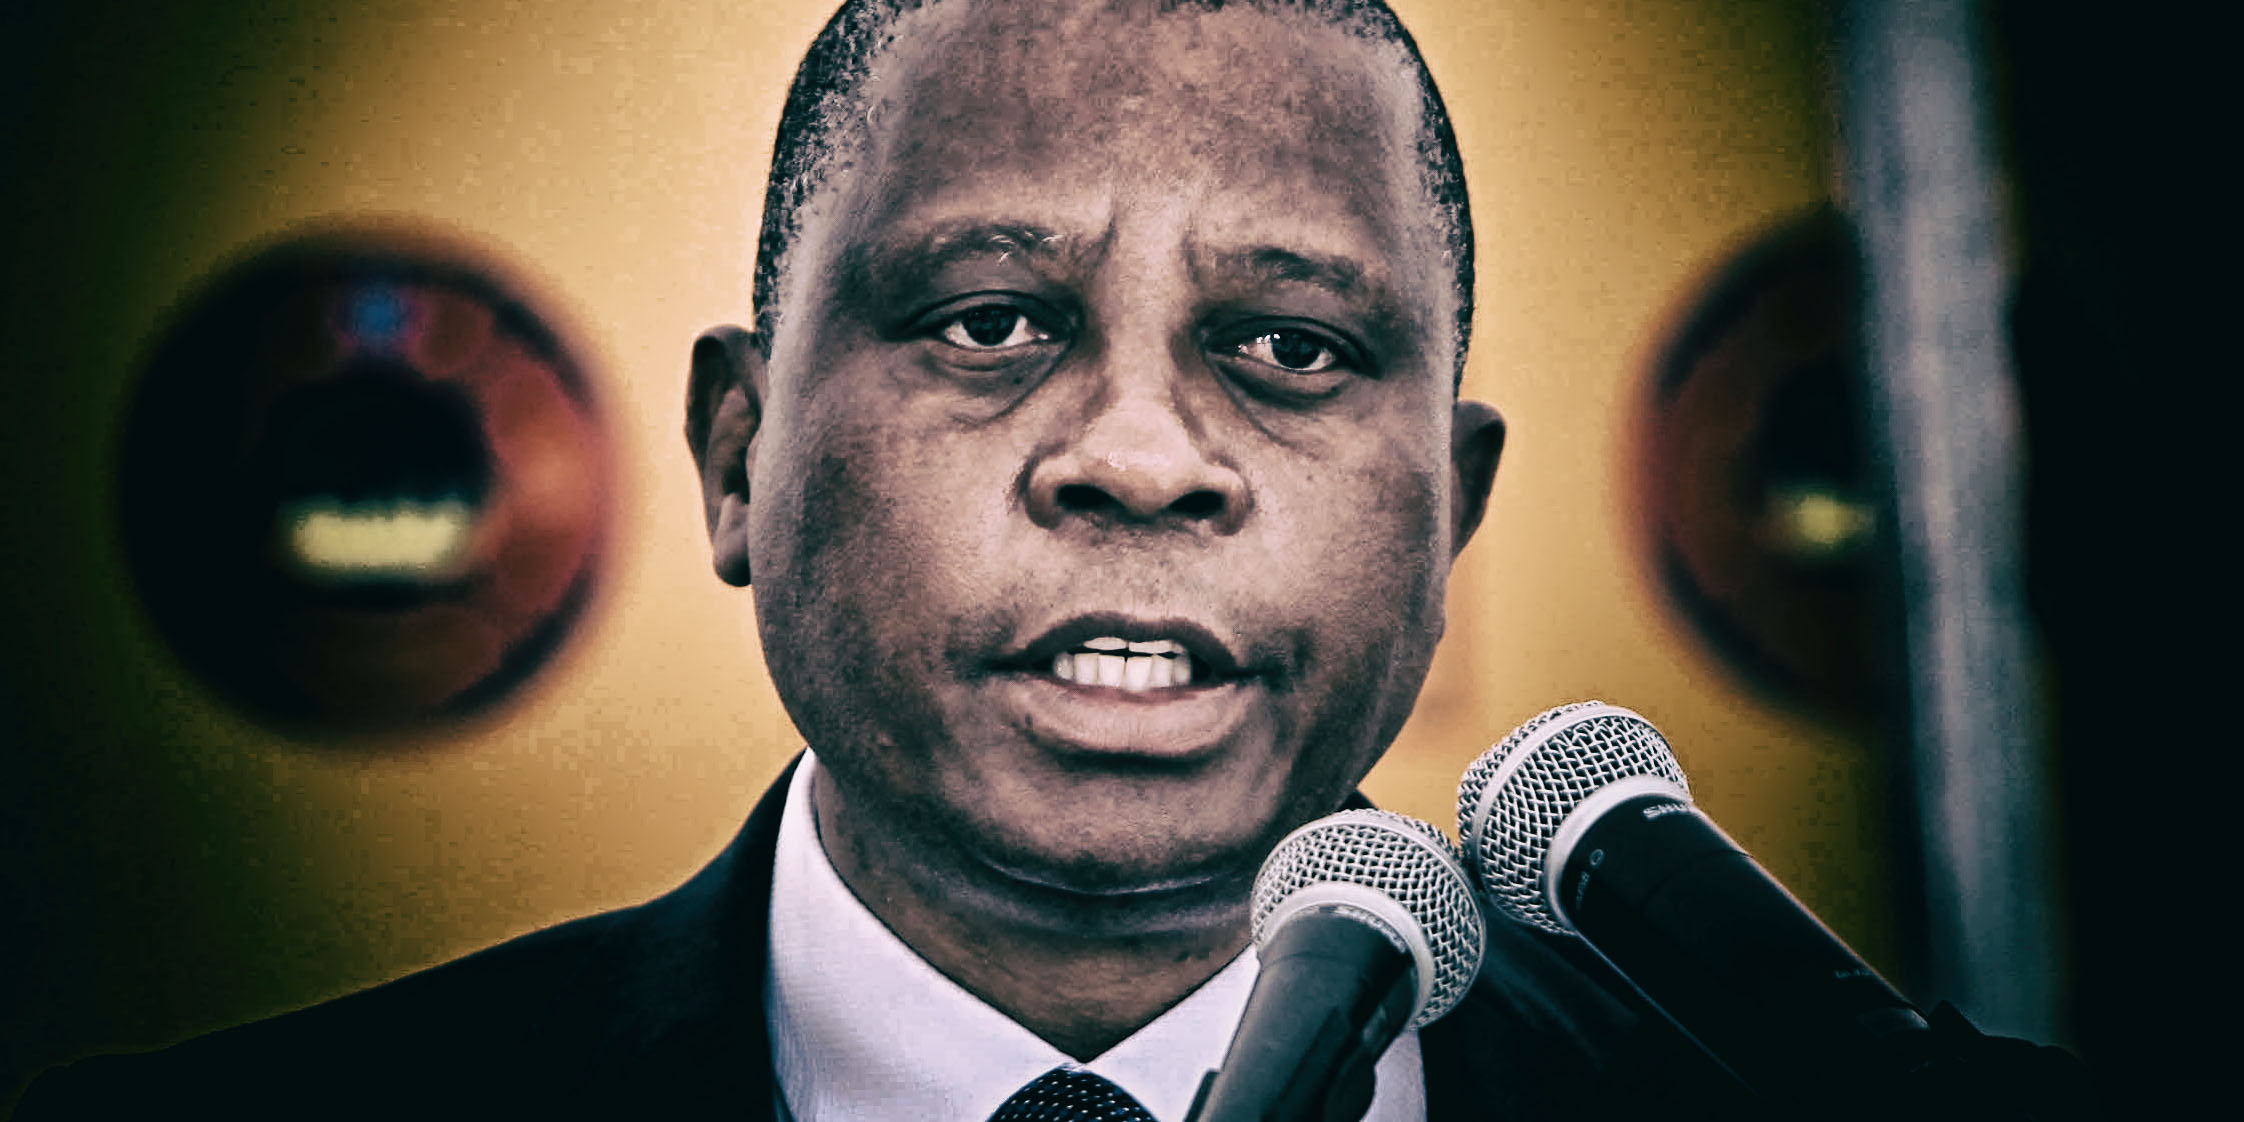 Mashaba resignation aftermath: Things are gonna get chaotic in big South African cities